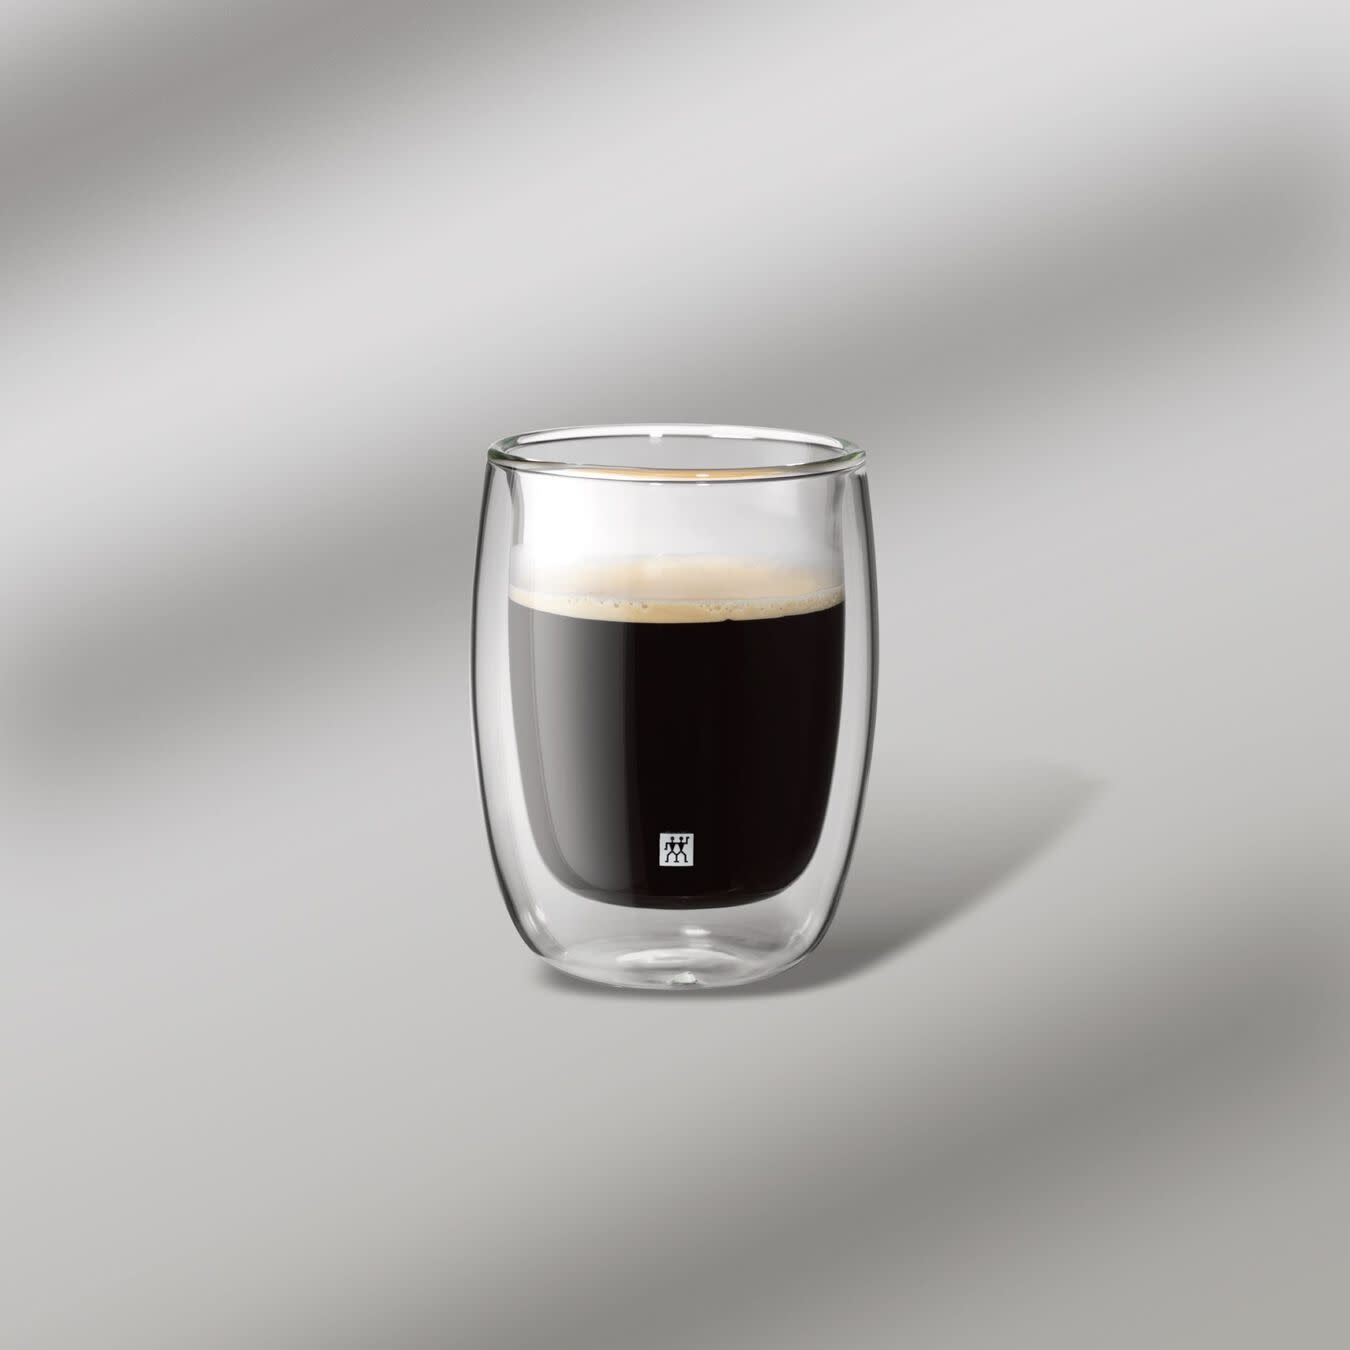 Zwilling J.A. Henckels Sorrento Cappuccino Glasses S/2 200ml /6.7oz